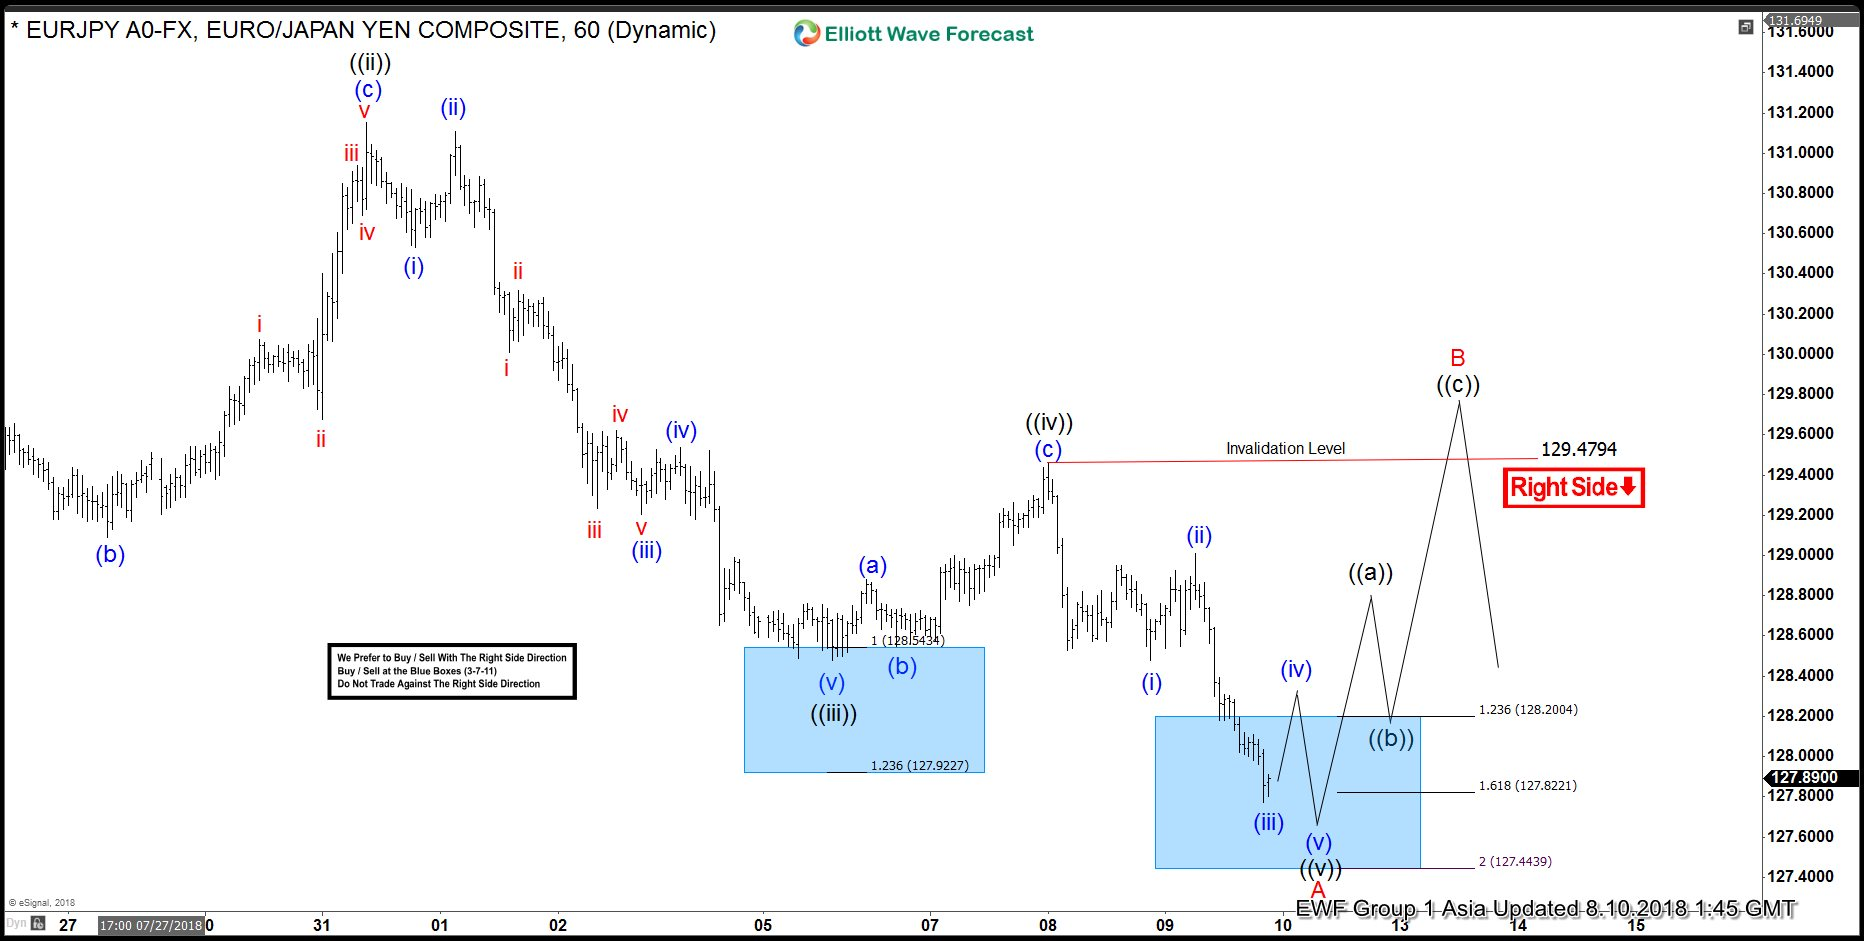 EURJPY Elliott Wave Analysis: Nearing 3 Wave Bounce?